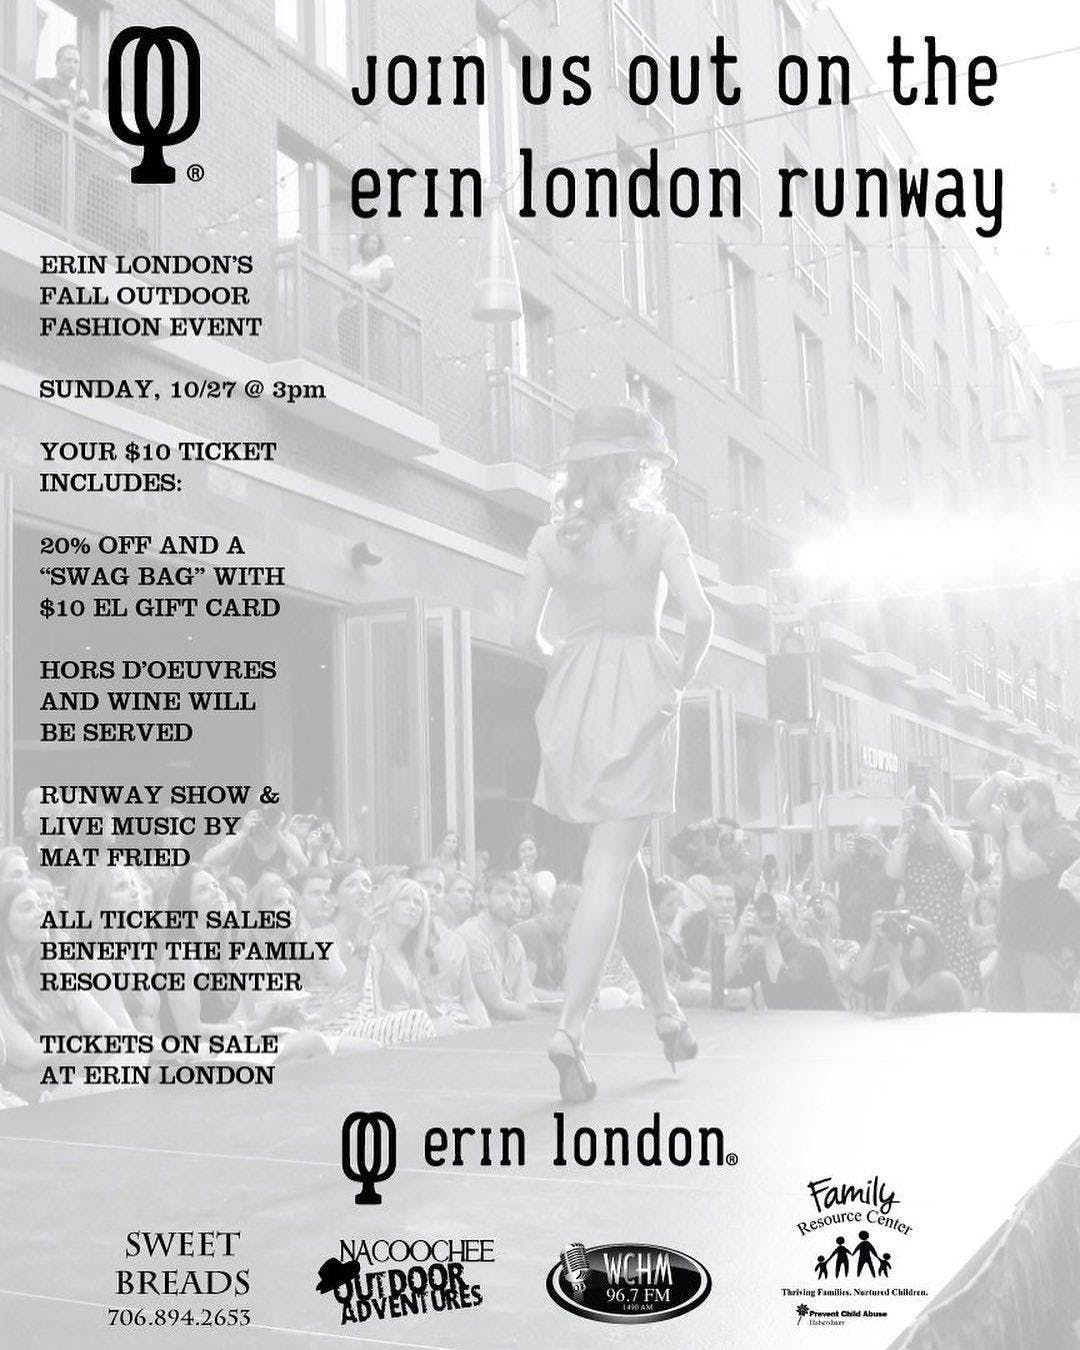 Erin London's Fall Fashion Show Event